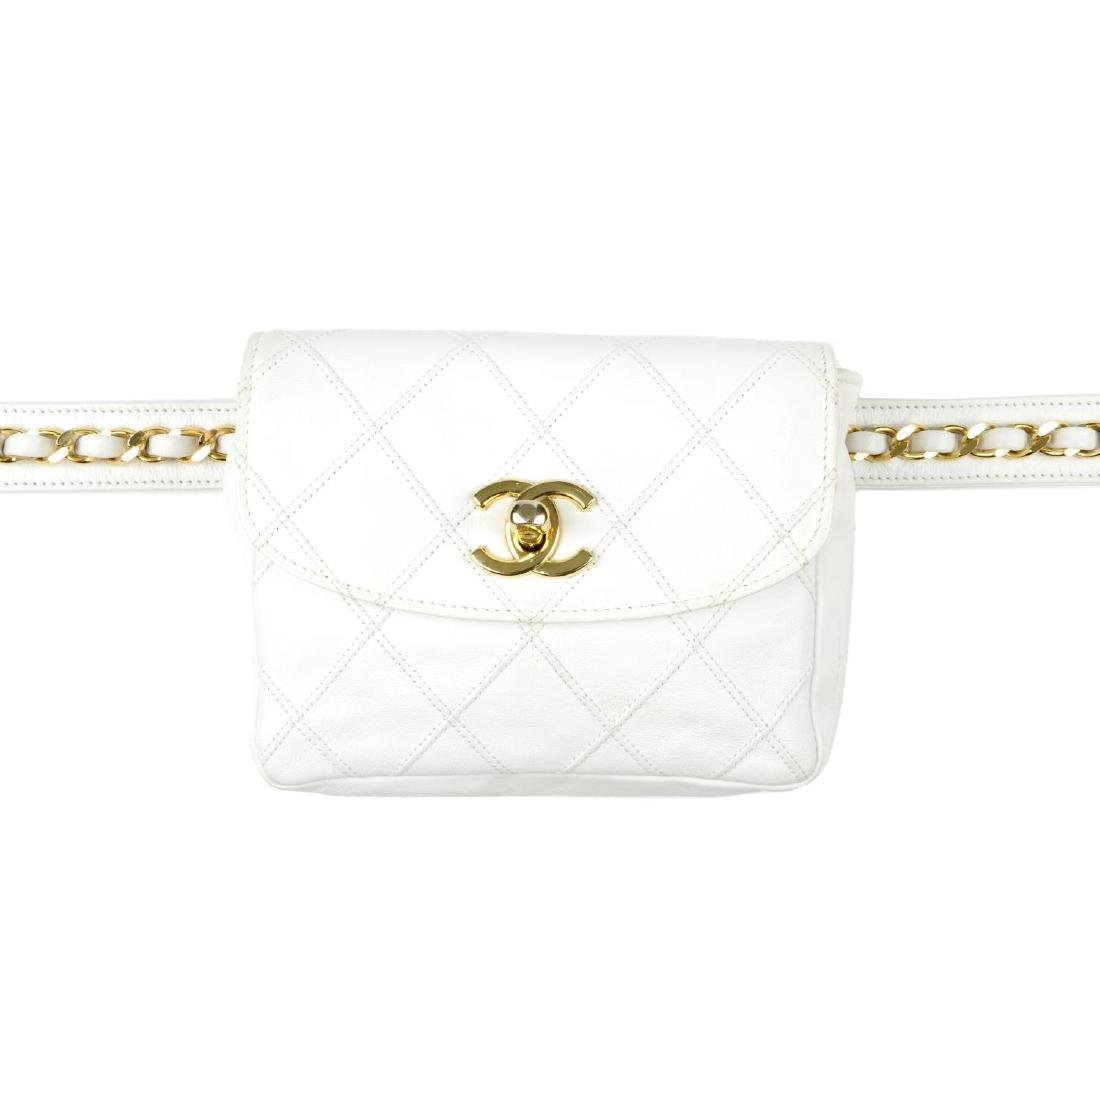 CHANEL - a vintage waist belt bag. Crafted from white